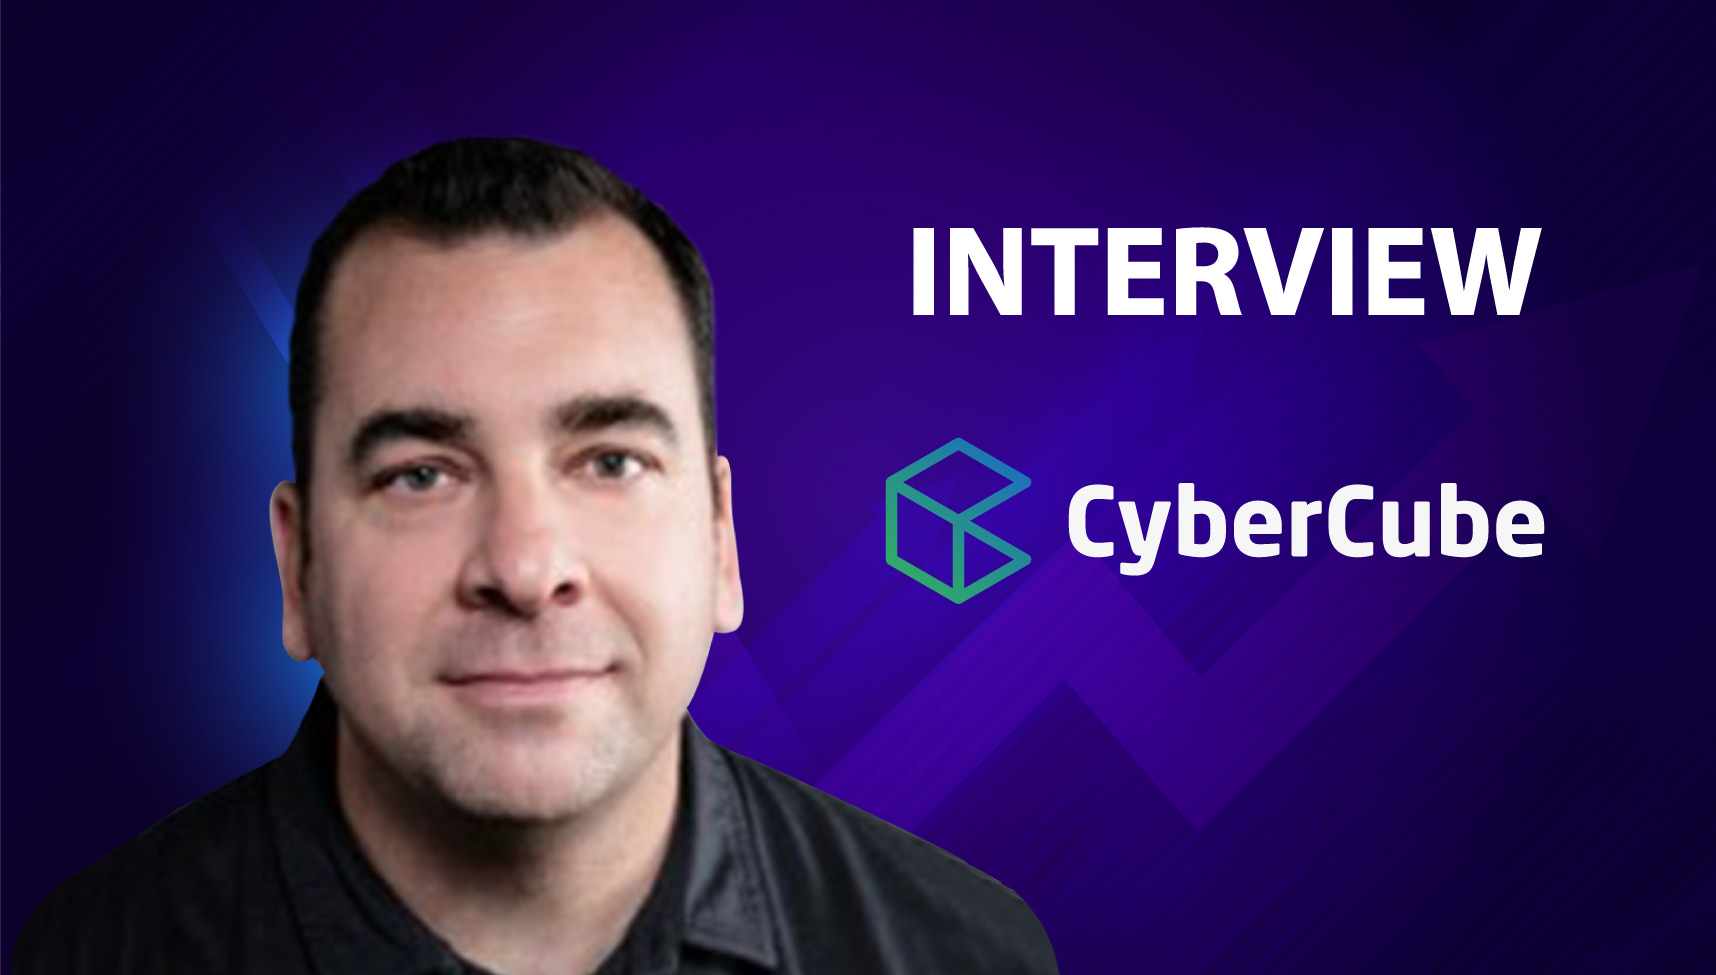 SalesTechStar Interview With Dave Gillmore Head of Sales and Business Development at CyberCube